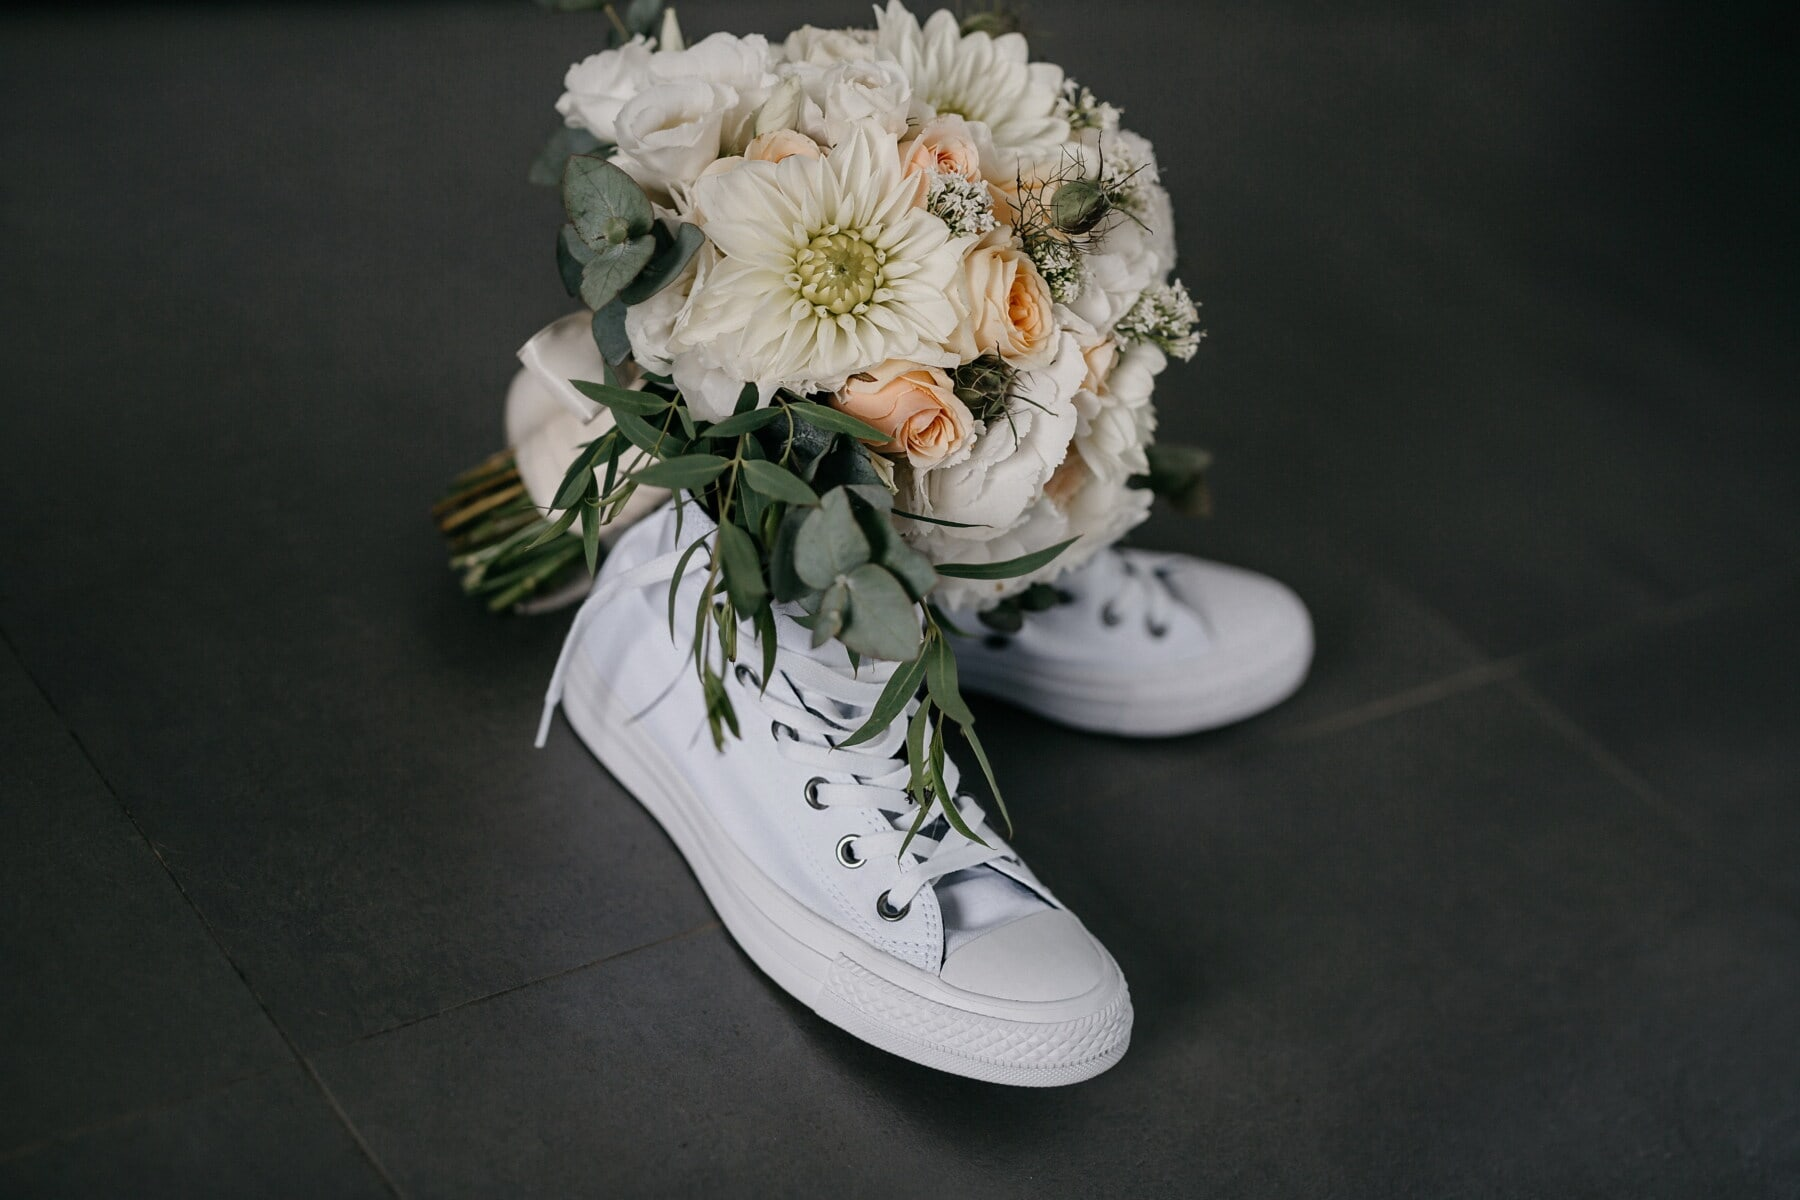 sneakers, white, footwear, elegant, bouquet, fashion, gifts, rose, flower, still life